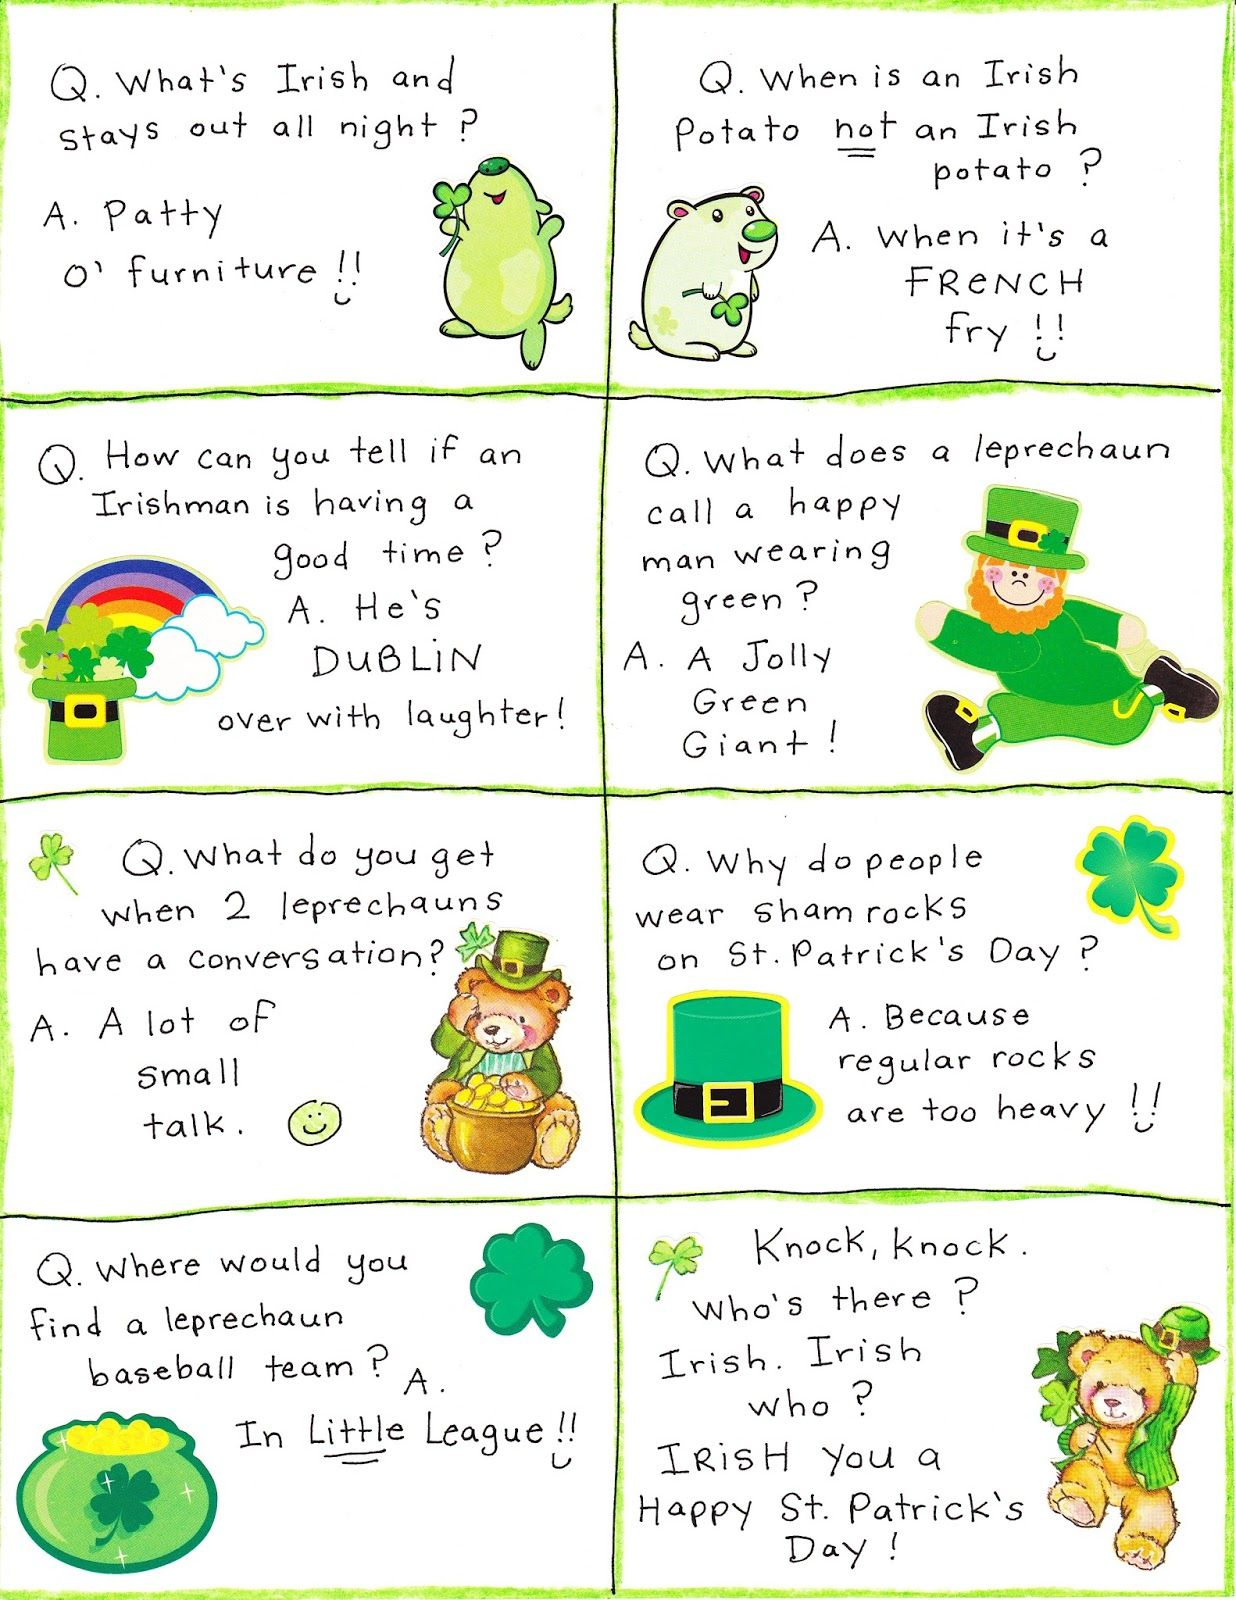 Uncategorized Valentines Day Riddles st patricks day irish jokes limericks riddles one liners short clean